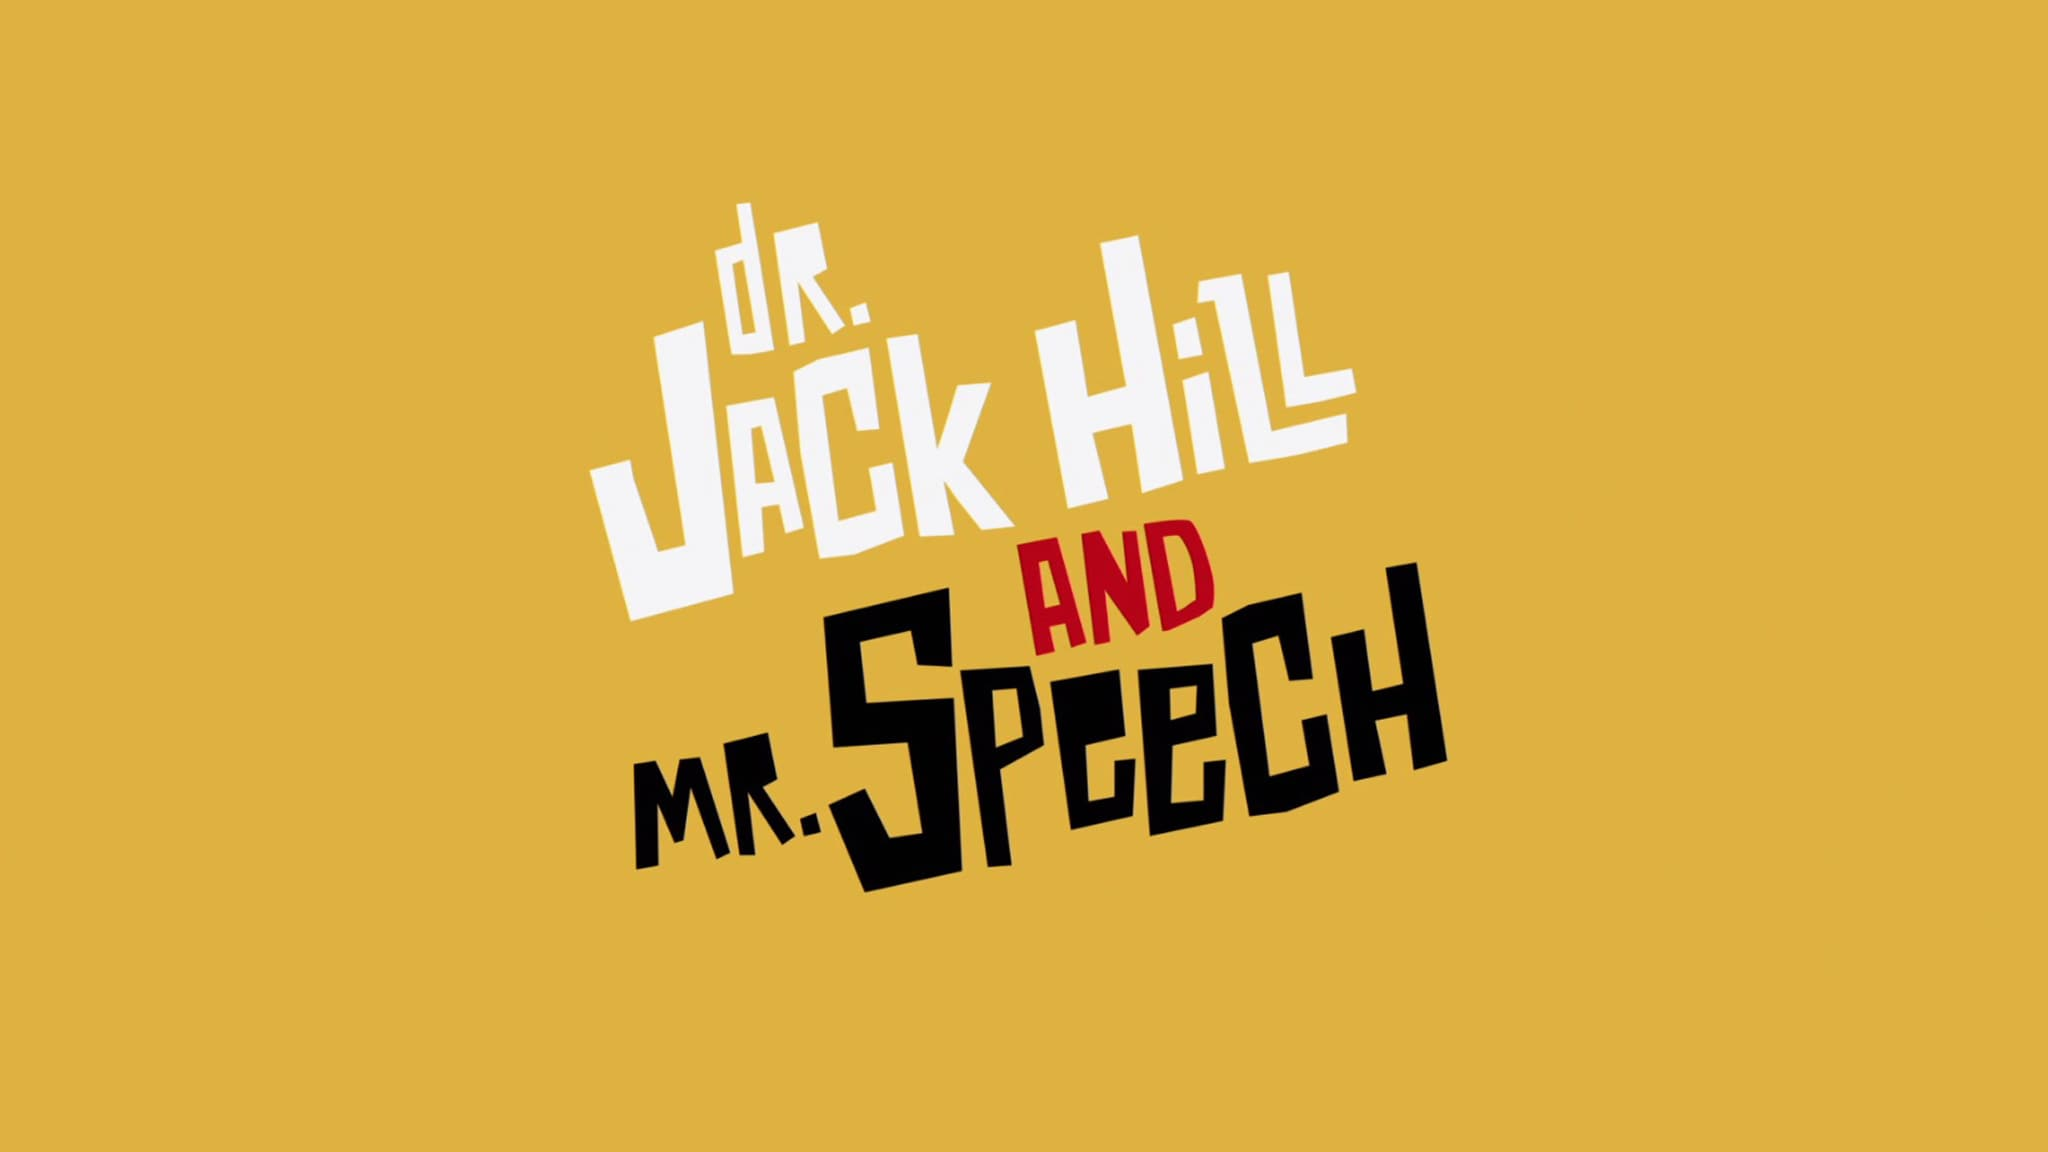 Rai Scuola Inglese Dr. Jack Hill and Mr. Speech St. 2 Ep.7 Poetic License